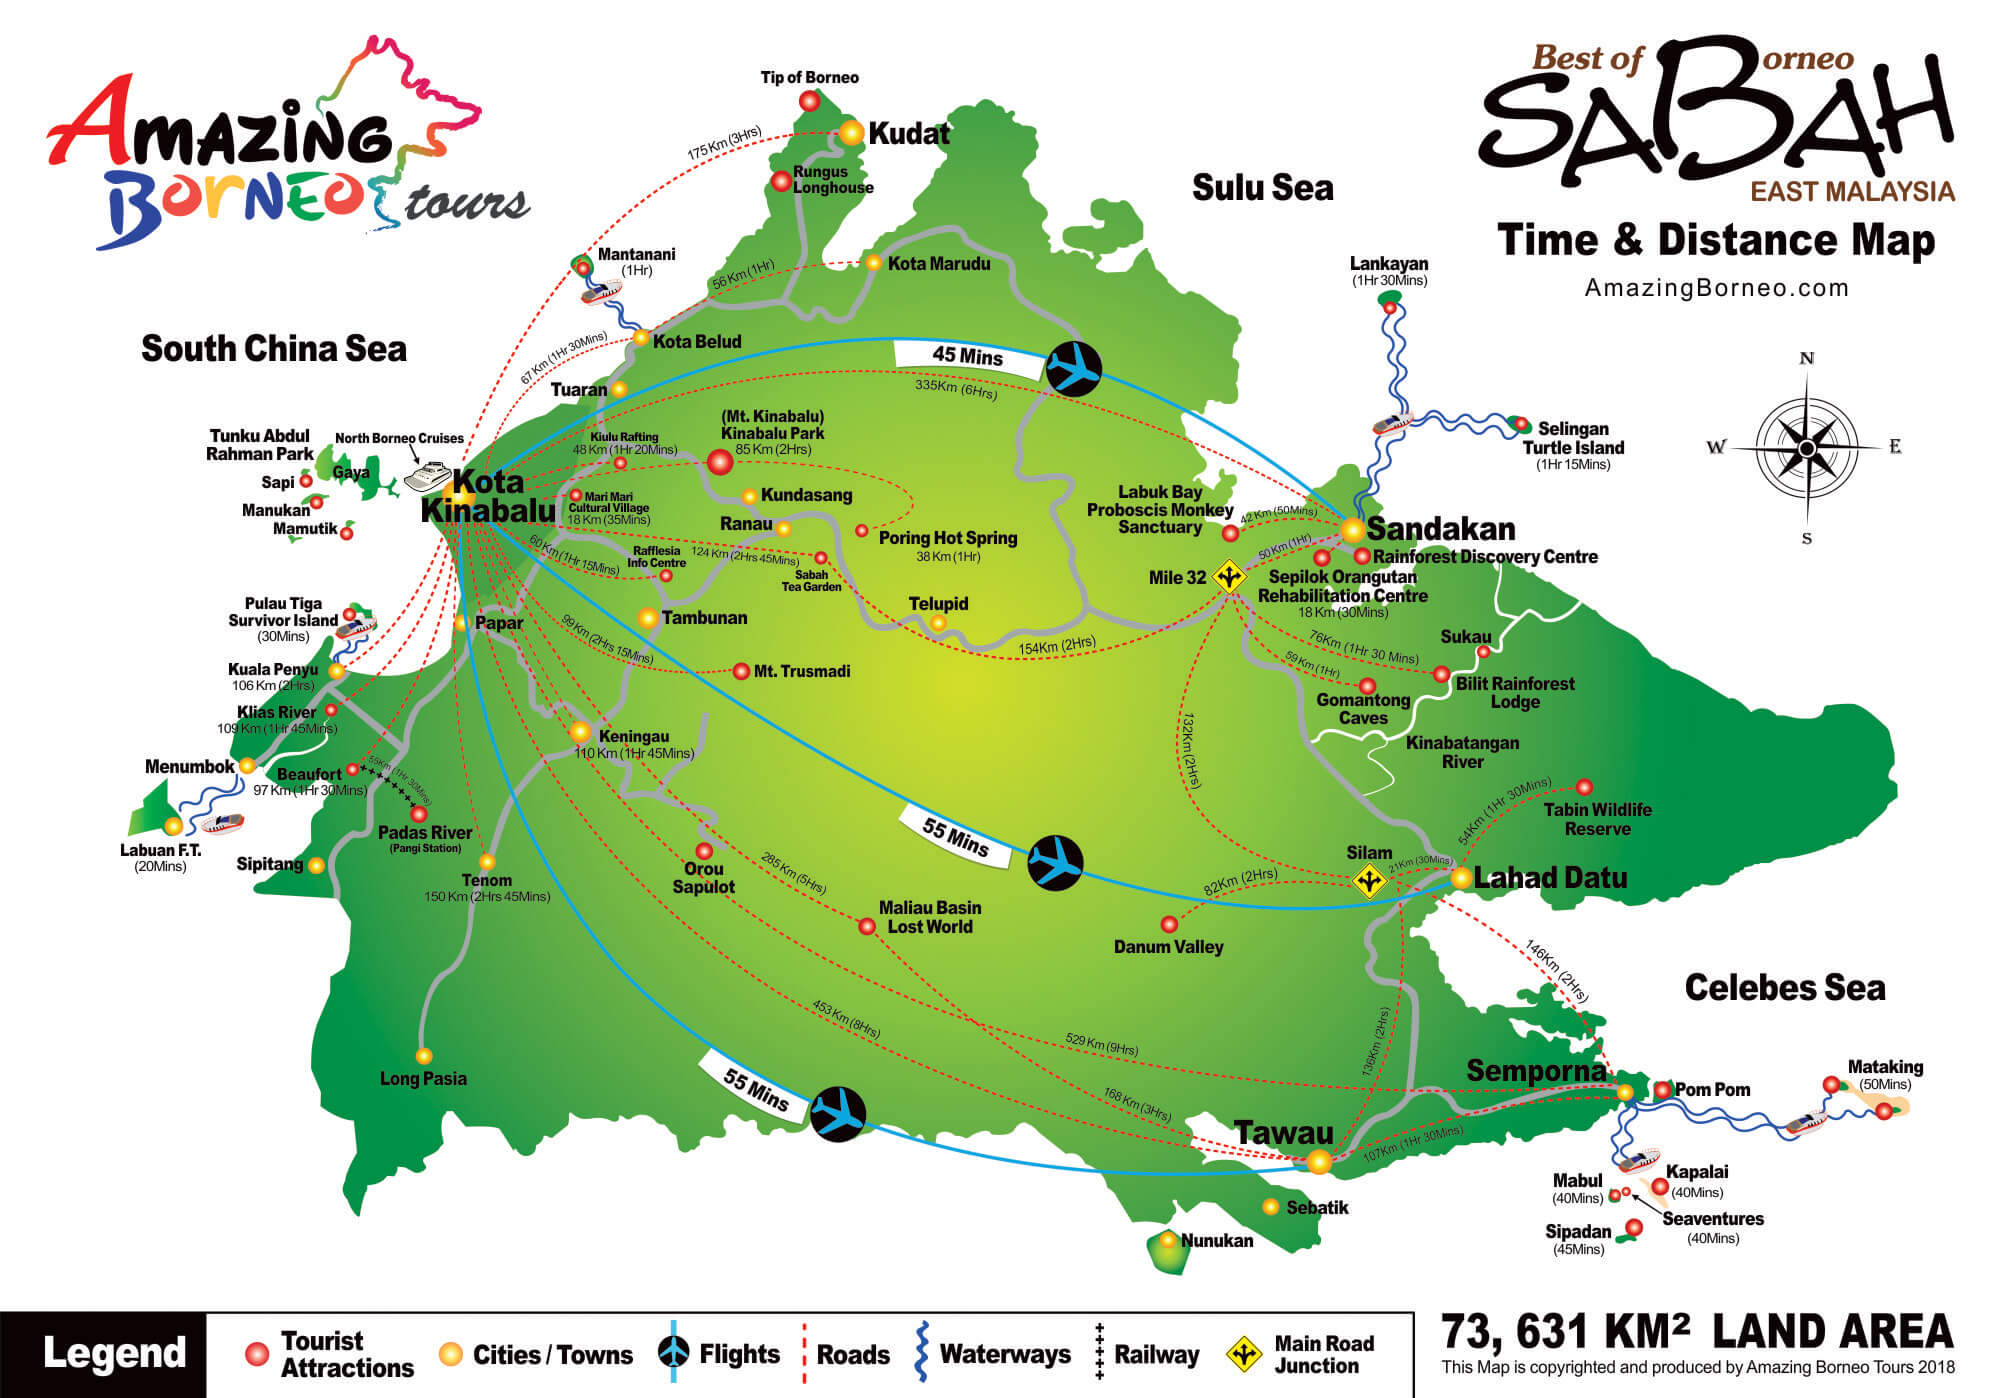 Sabah Map Time & Distance - East Malaysia Amazing Borneo